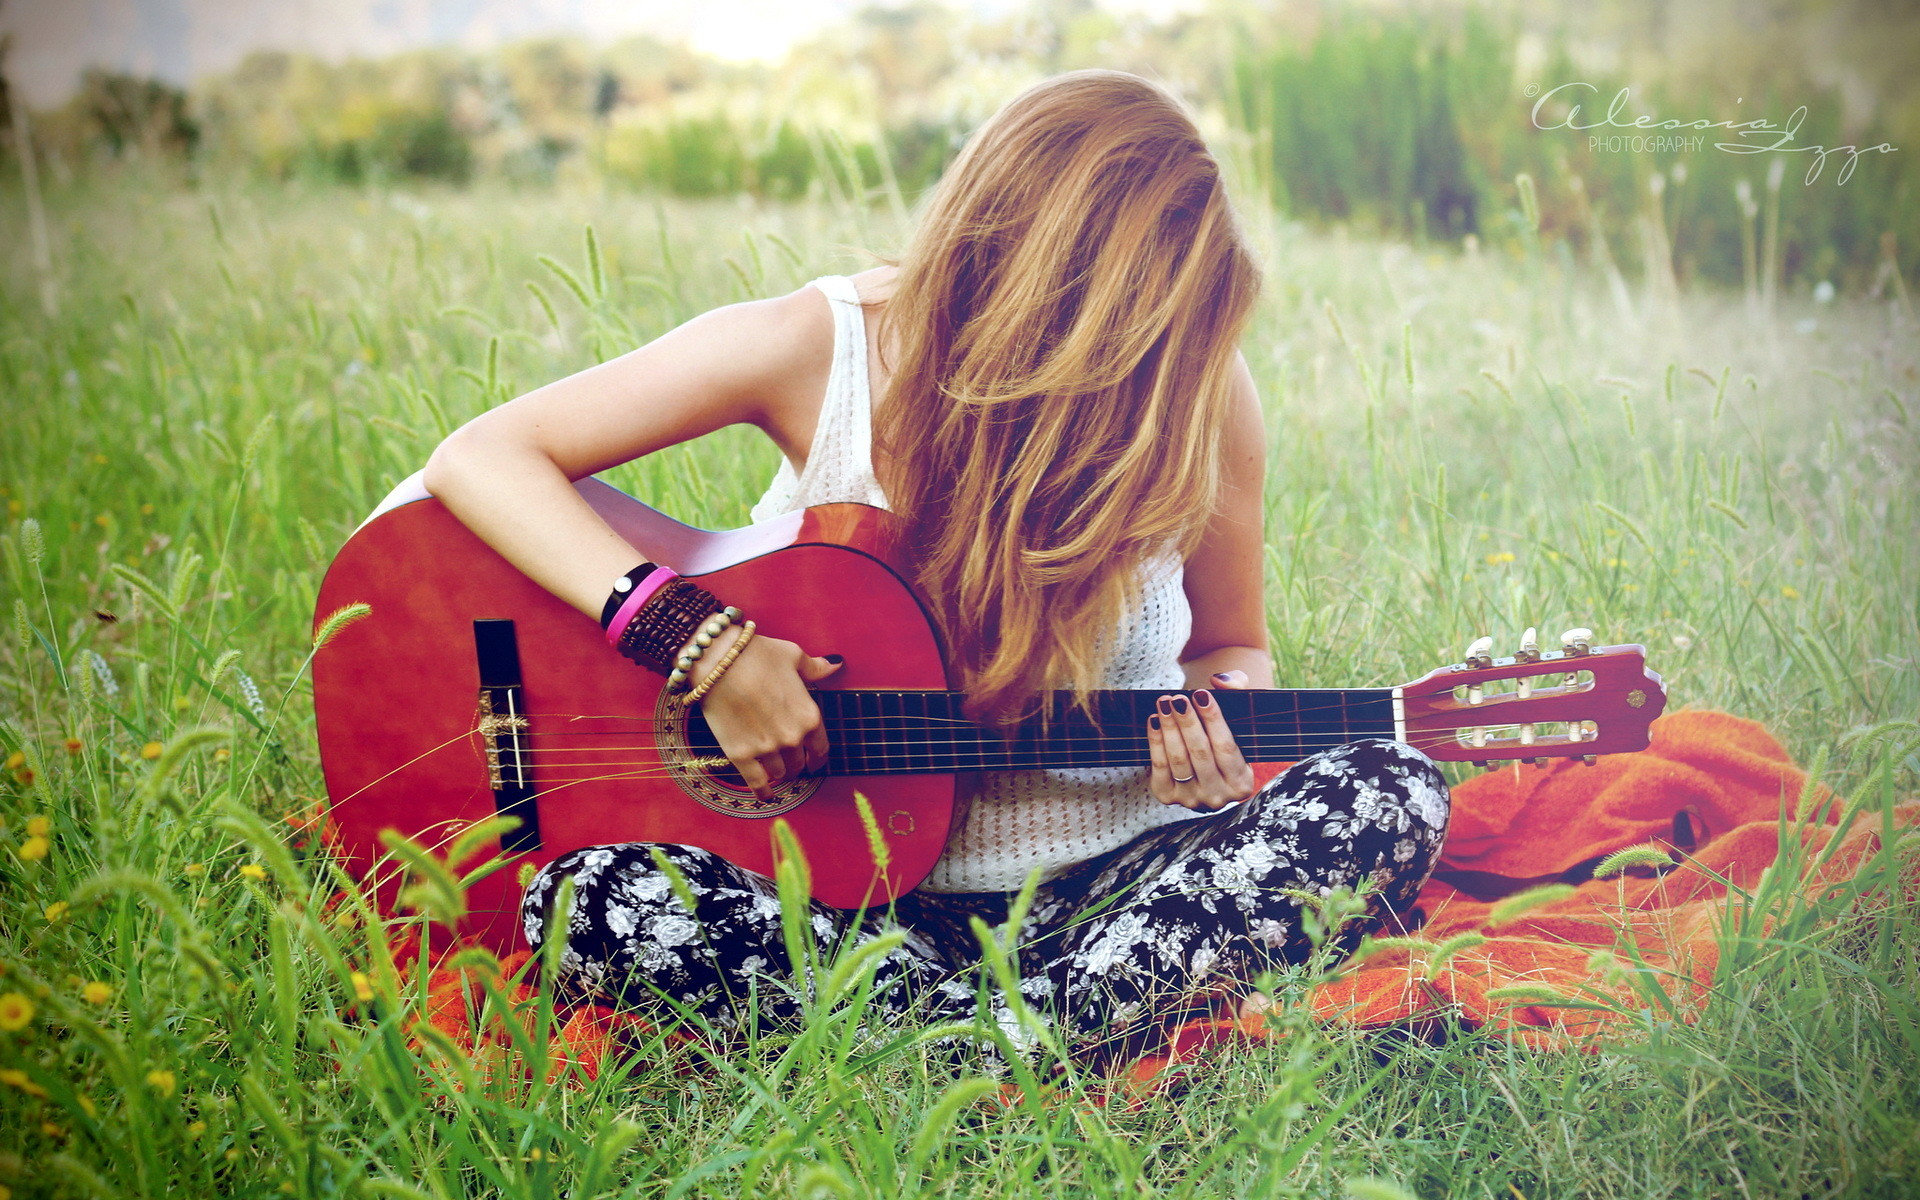 Guitar Girls Wallpaper (76+ Images